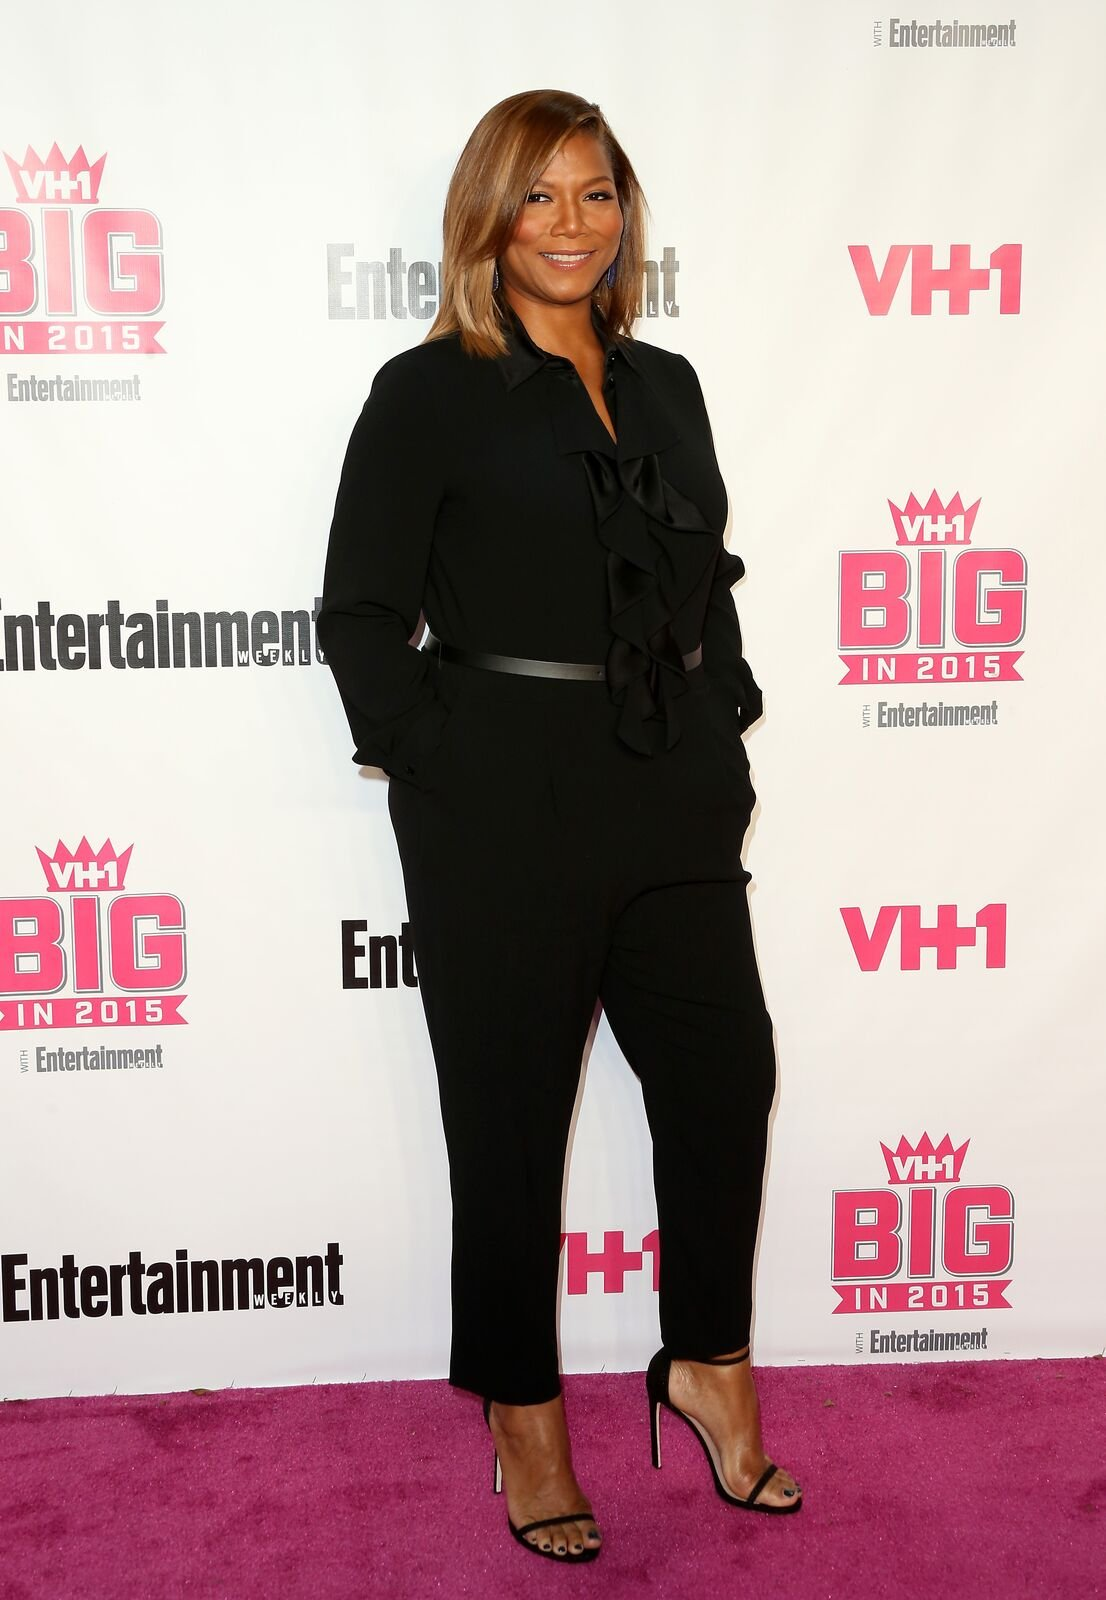 Actress Queen Latifa attends VH1 Big In 2015 With Entertainment Weekly Awards at Pacific Design Center on November 15, 2015   Photo: Getty Images